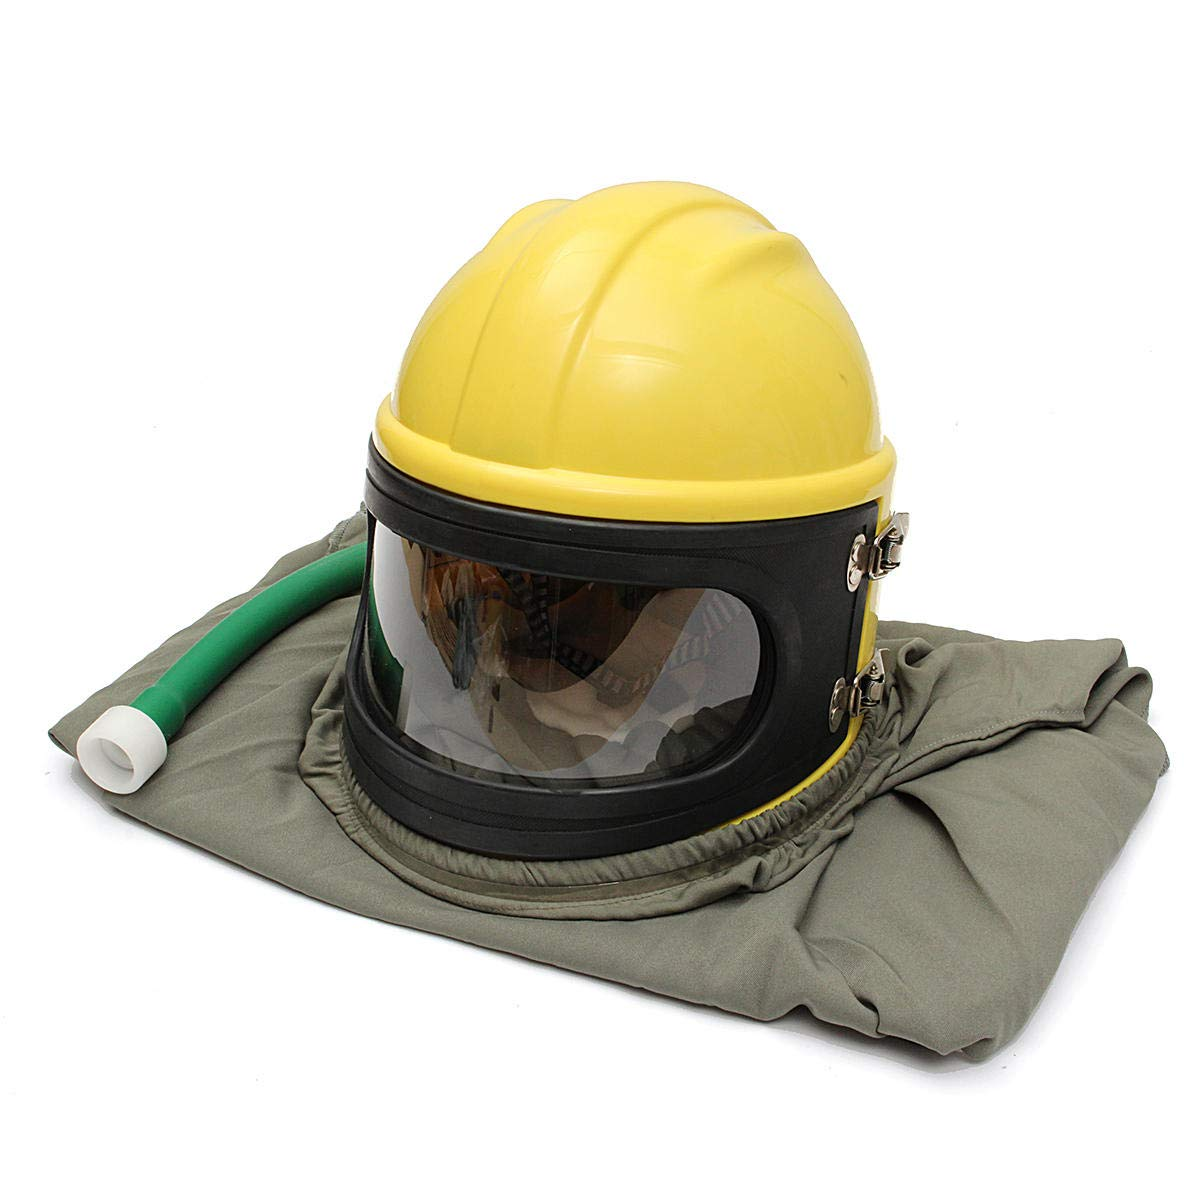 AIR FED Safety Sandblast Helmet Sand Blast Hood Protector for Sandblasting